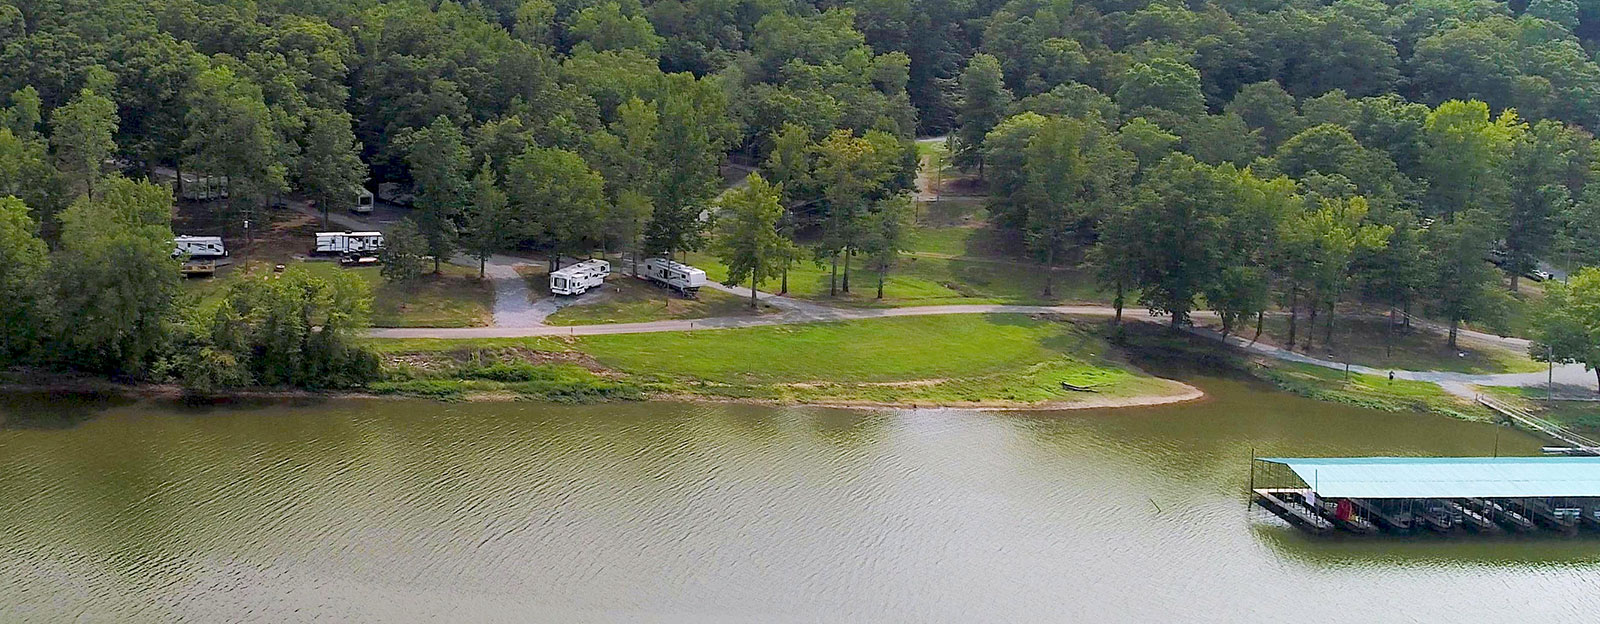 Cane Creek Marina with RV Campgrounds Near Land Between the Lakes